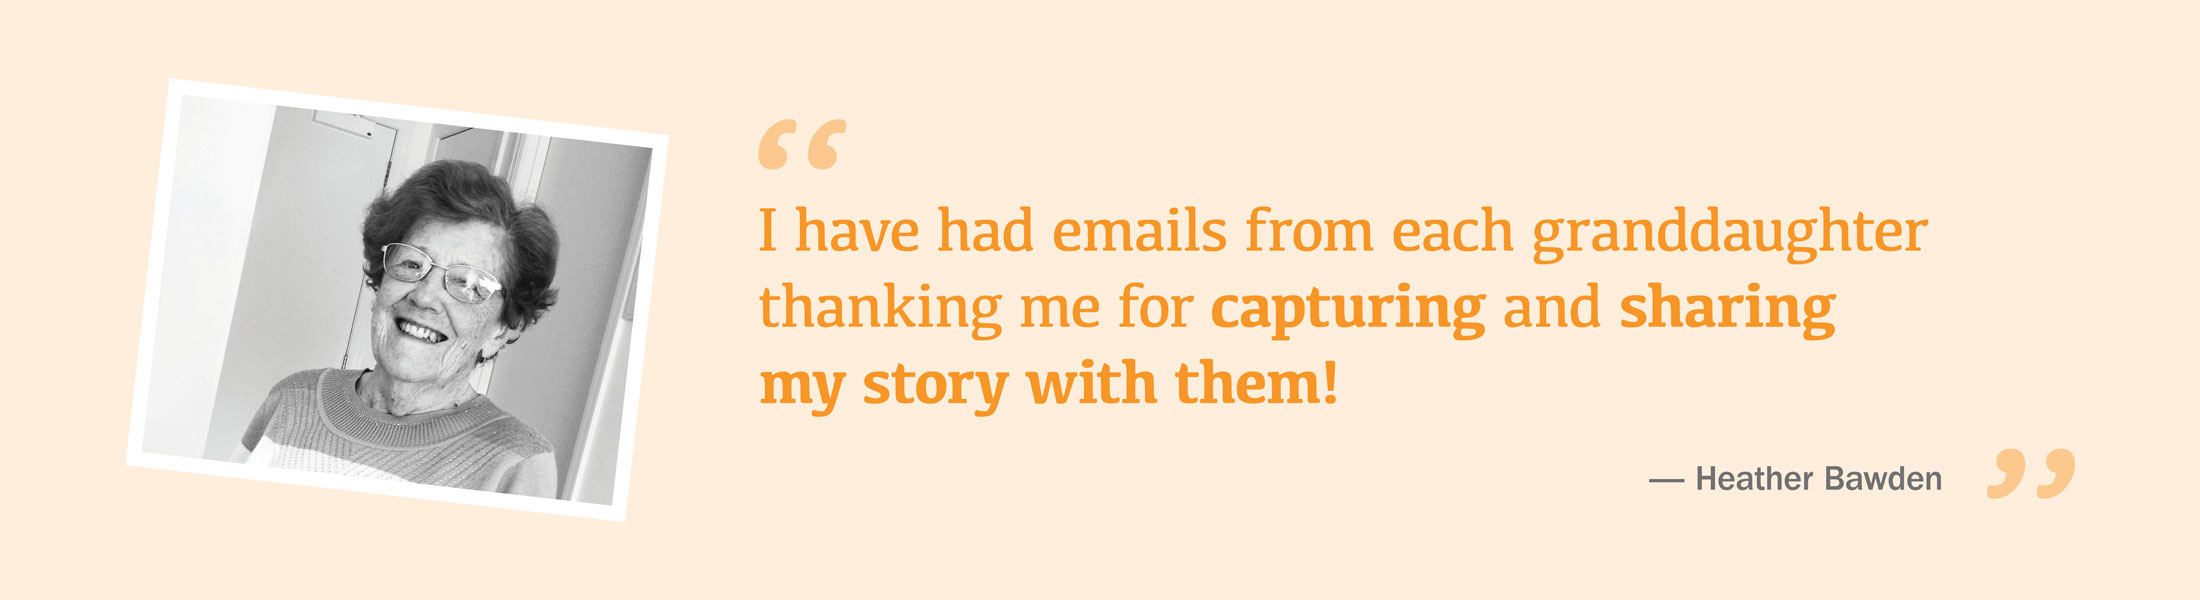 My word testimonial capturing and sharing stories